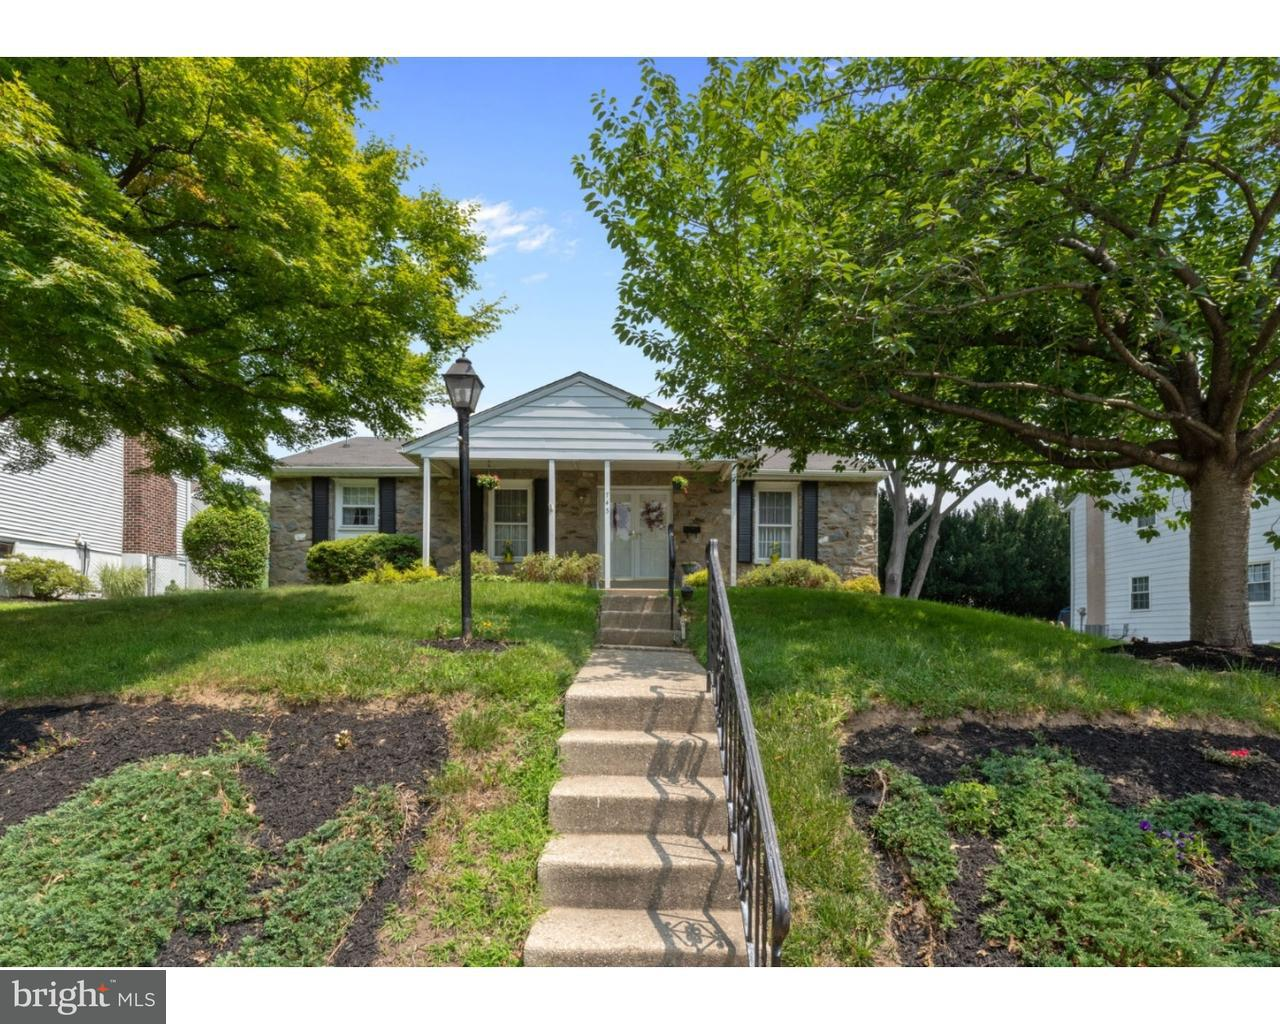 743 W ROLLING RD, SPRINGFIELD - Listed at $350,000, SPRINGFIELD